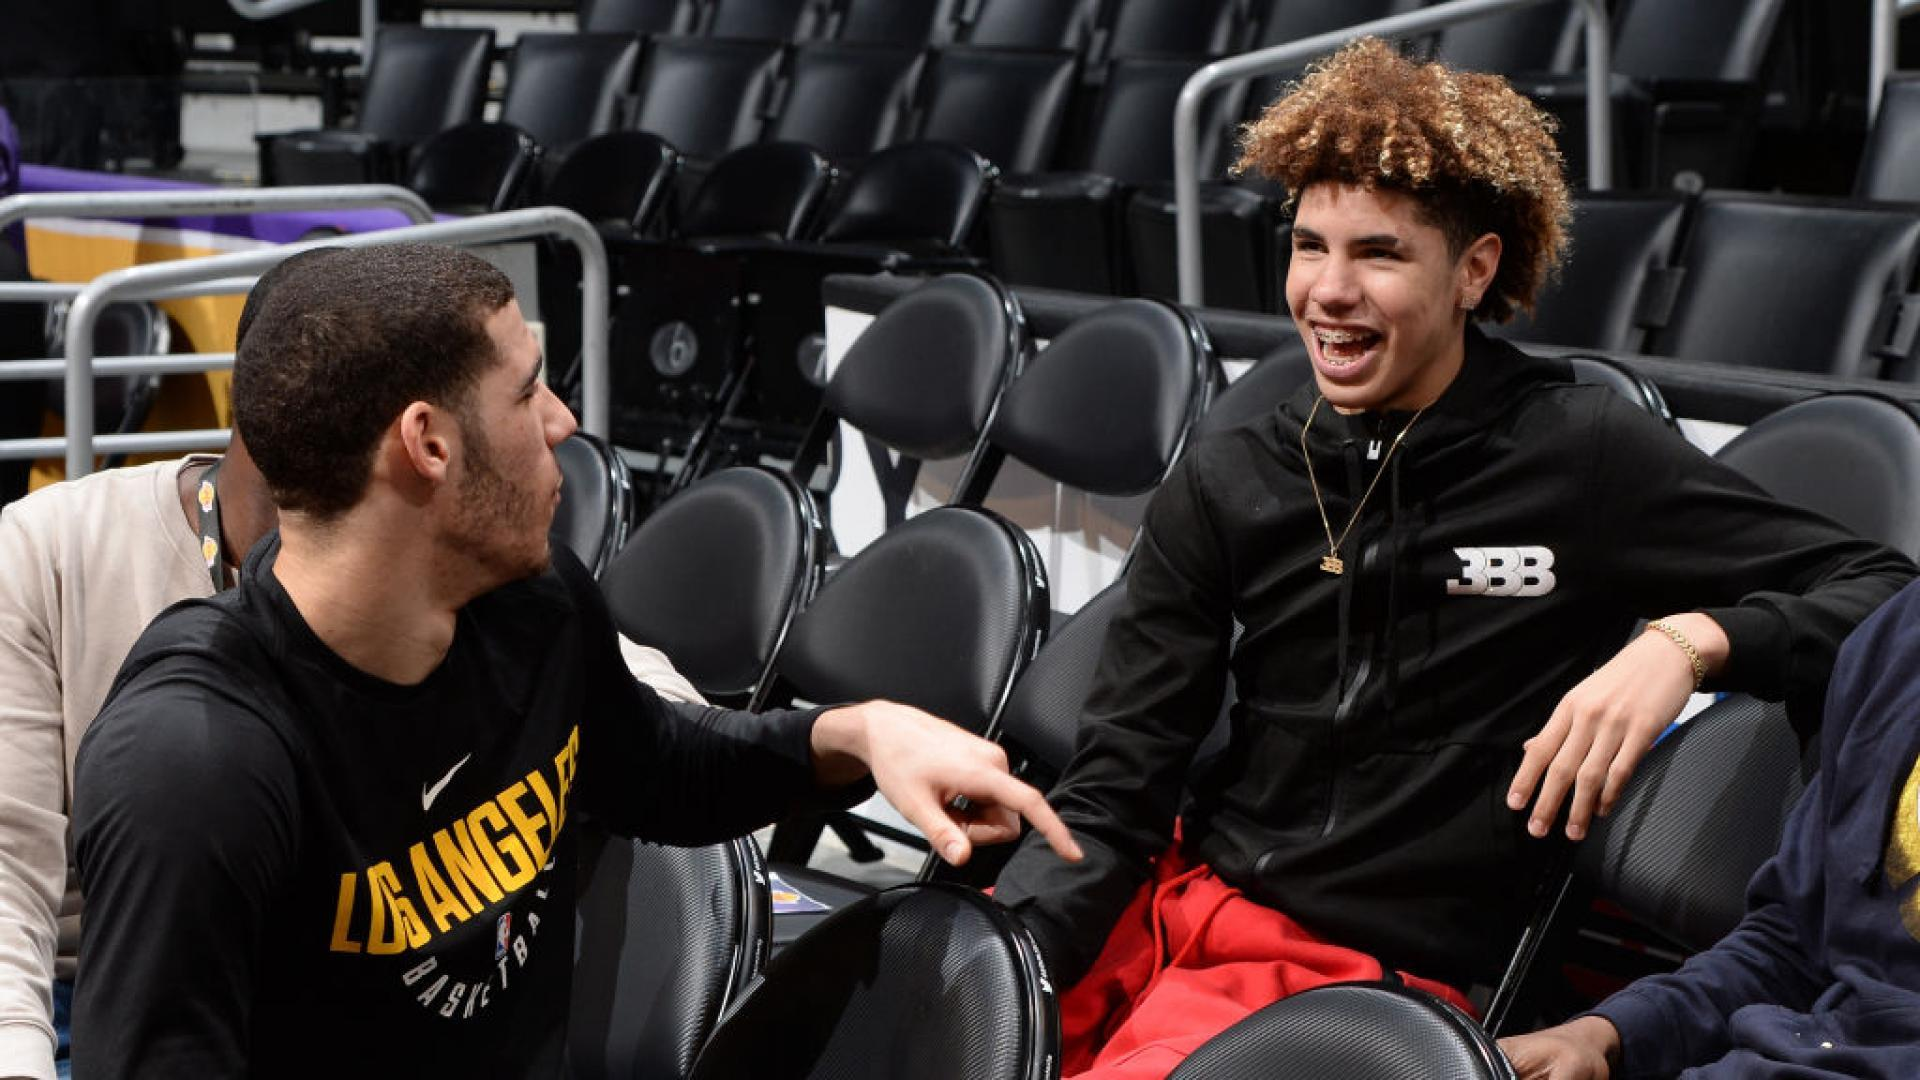 LaMelo Ball, 17, signs with Australian team to prep for NBA